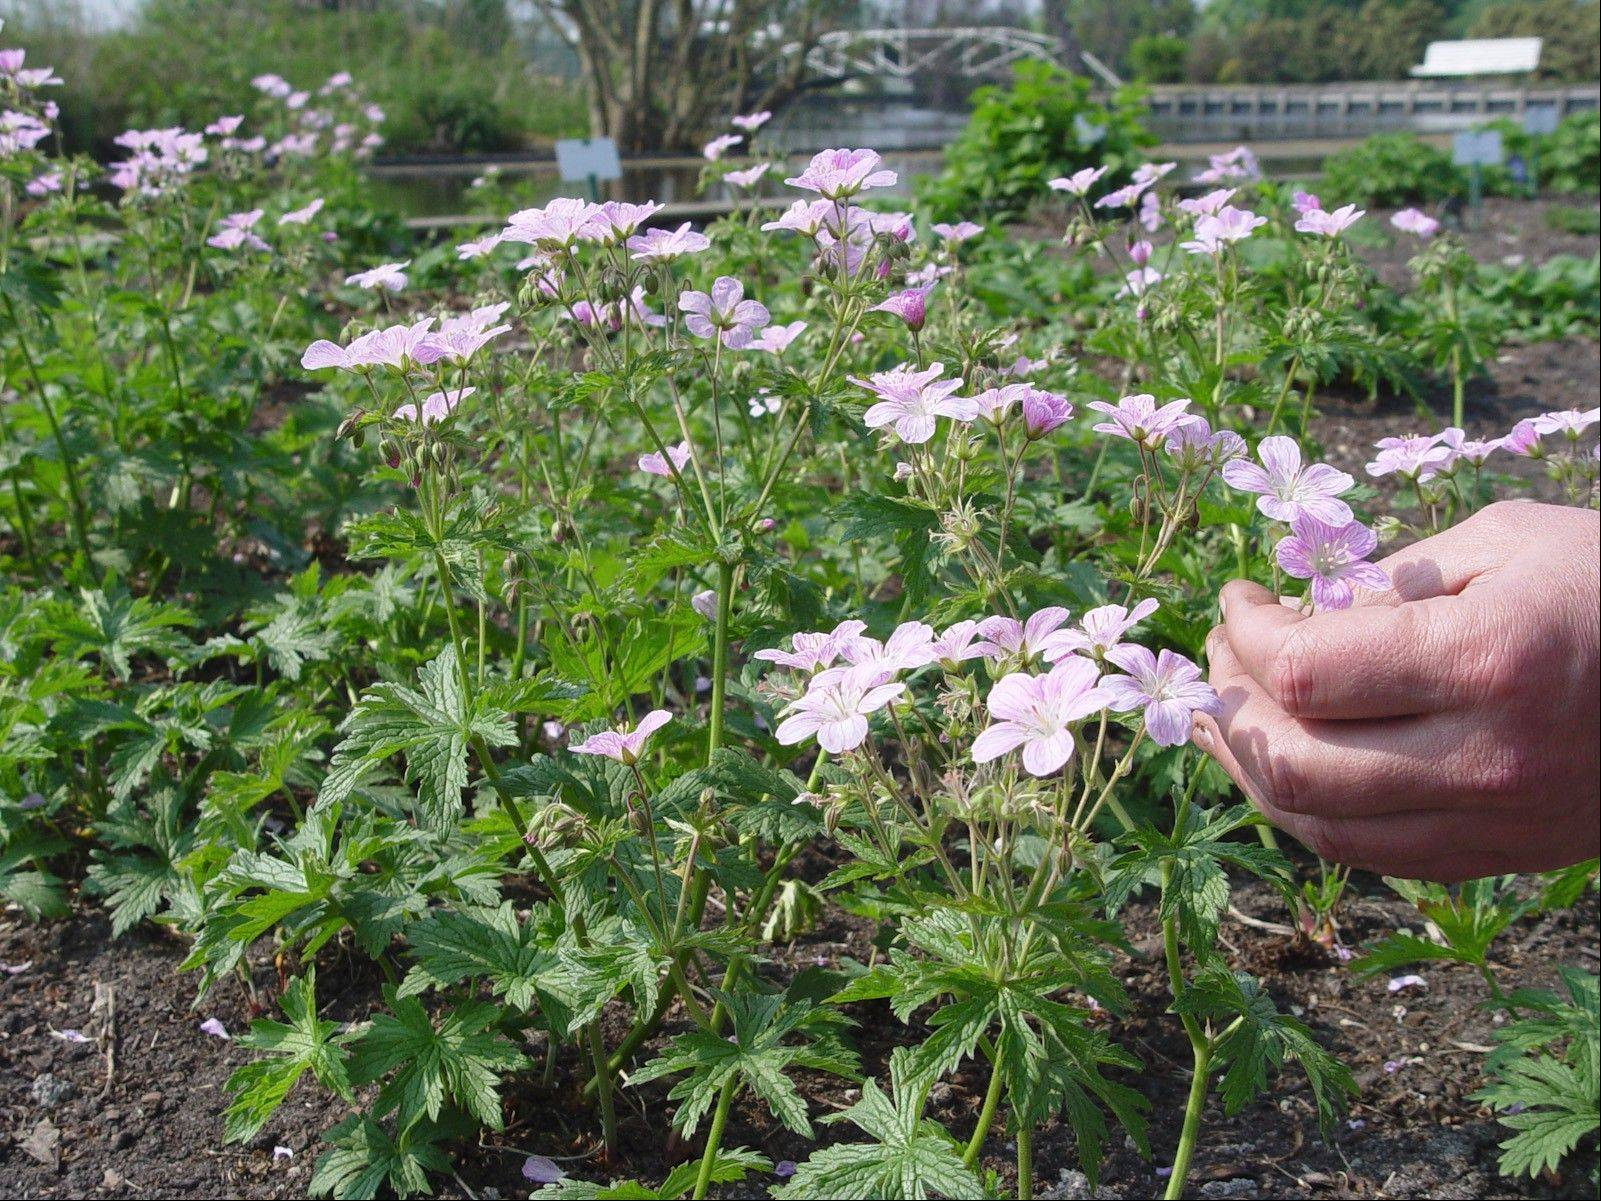 The hardy geranium looks so delicate, but it's an incredibly tough little plant.